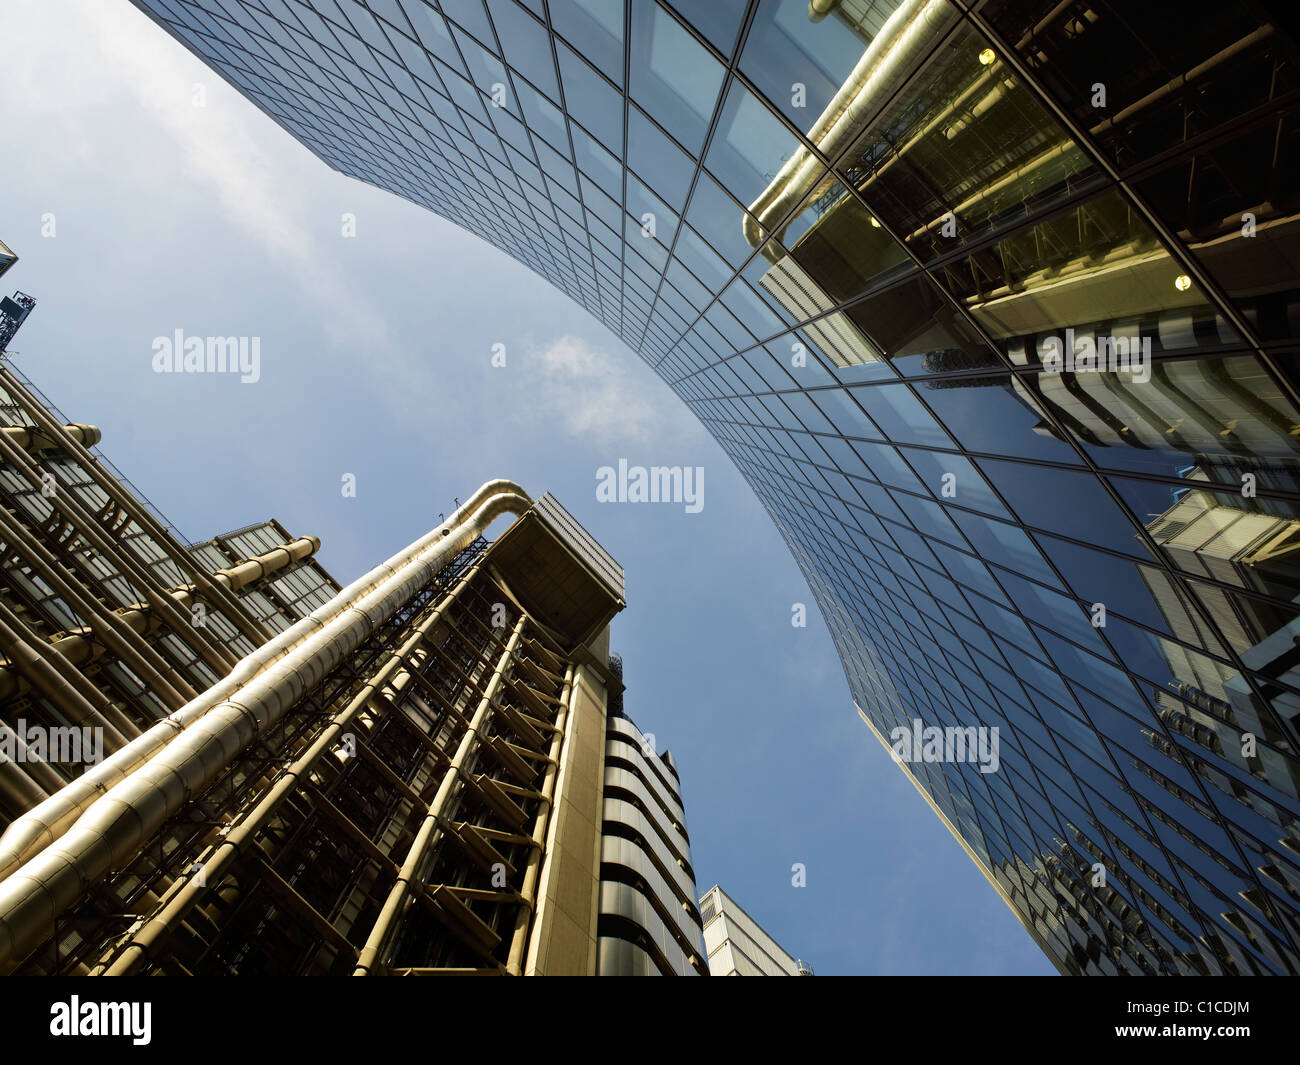 Lloyd's of London Building, Richard Rogers 1986, reflected in curved glass of Norman Foster's 2008 28 storey - Stock Image